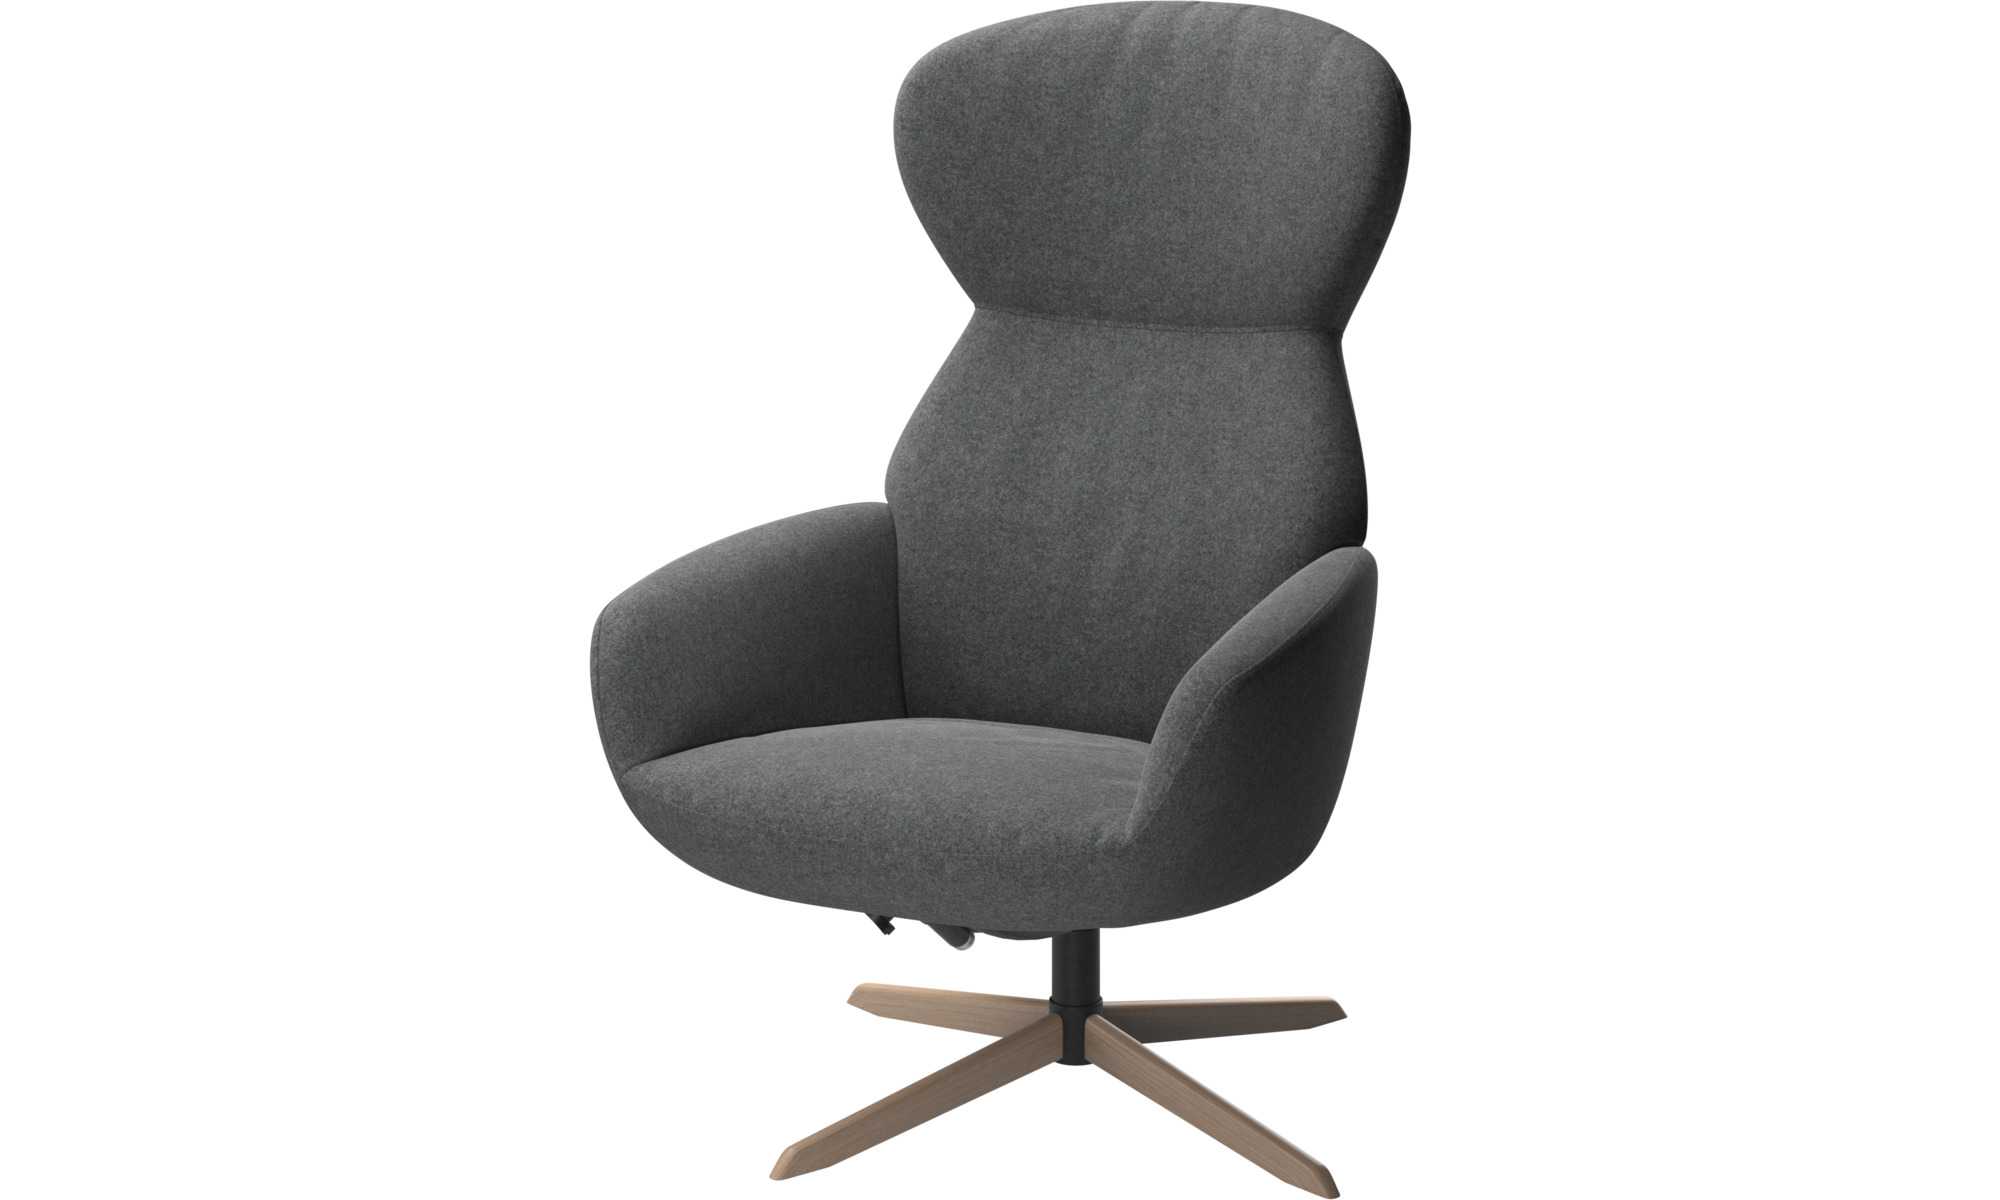 Recliners - Athena chair with reclining back function and swivel base - Grey - Fabric